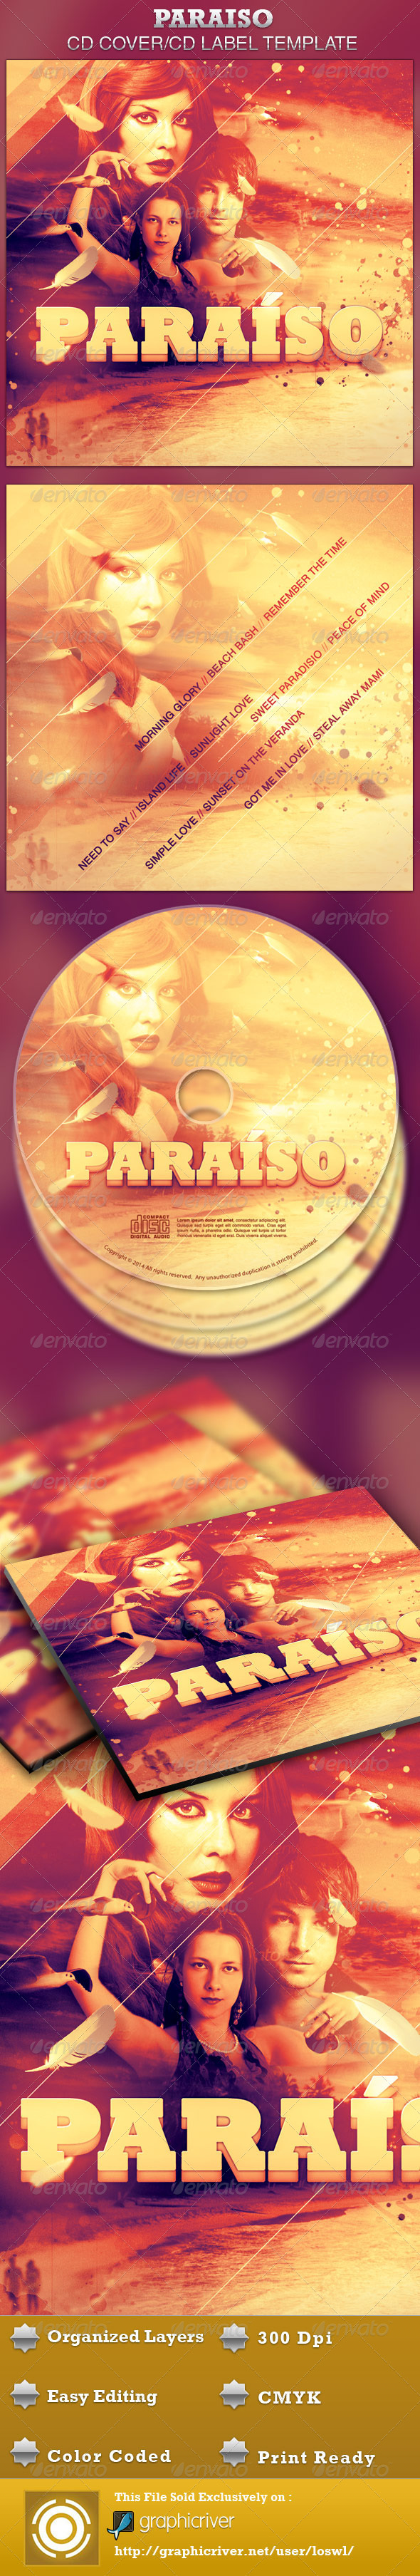 Paraiso CD Artwork Template - CD & DVD Artwork Print Templates